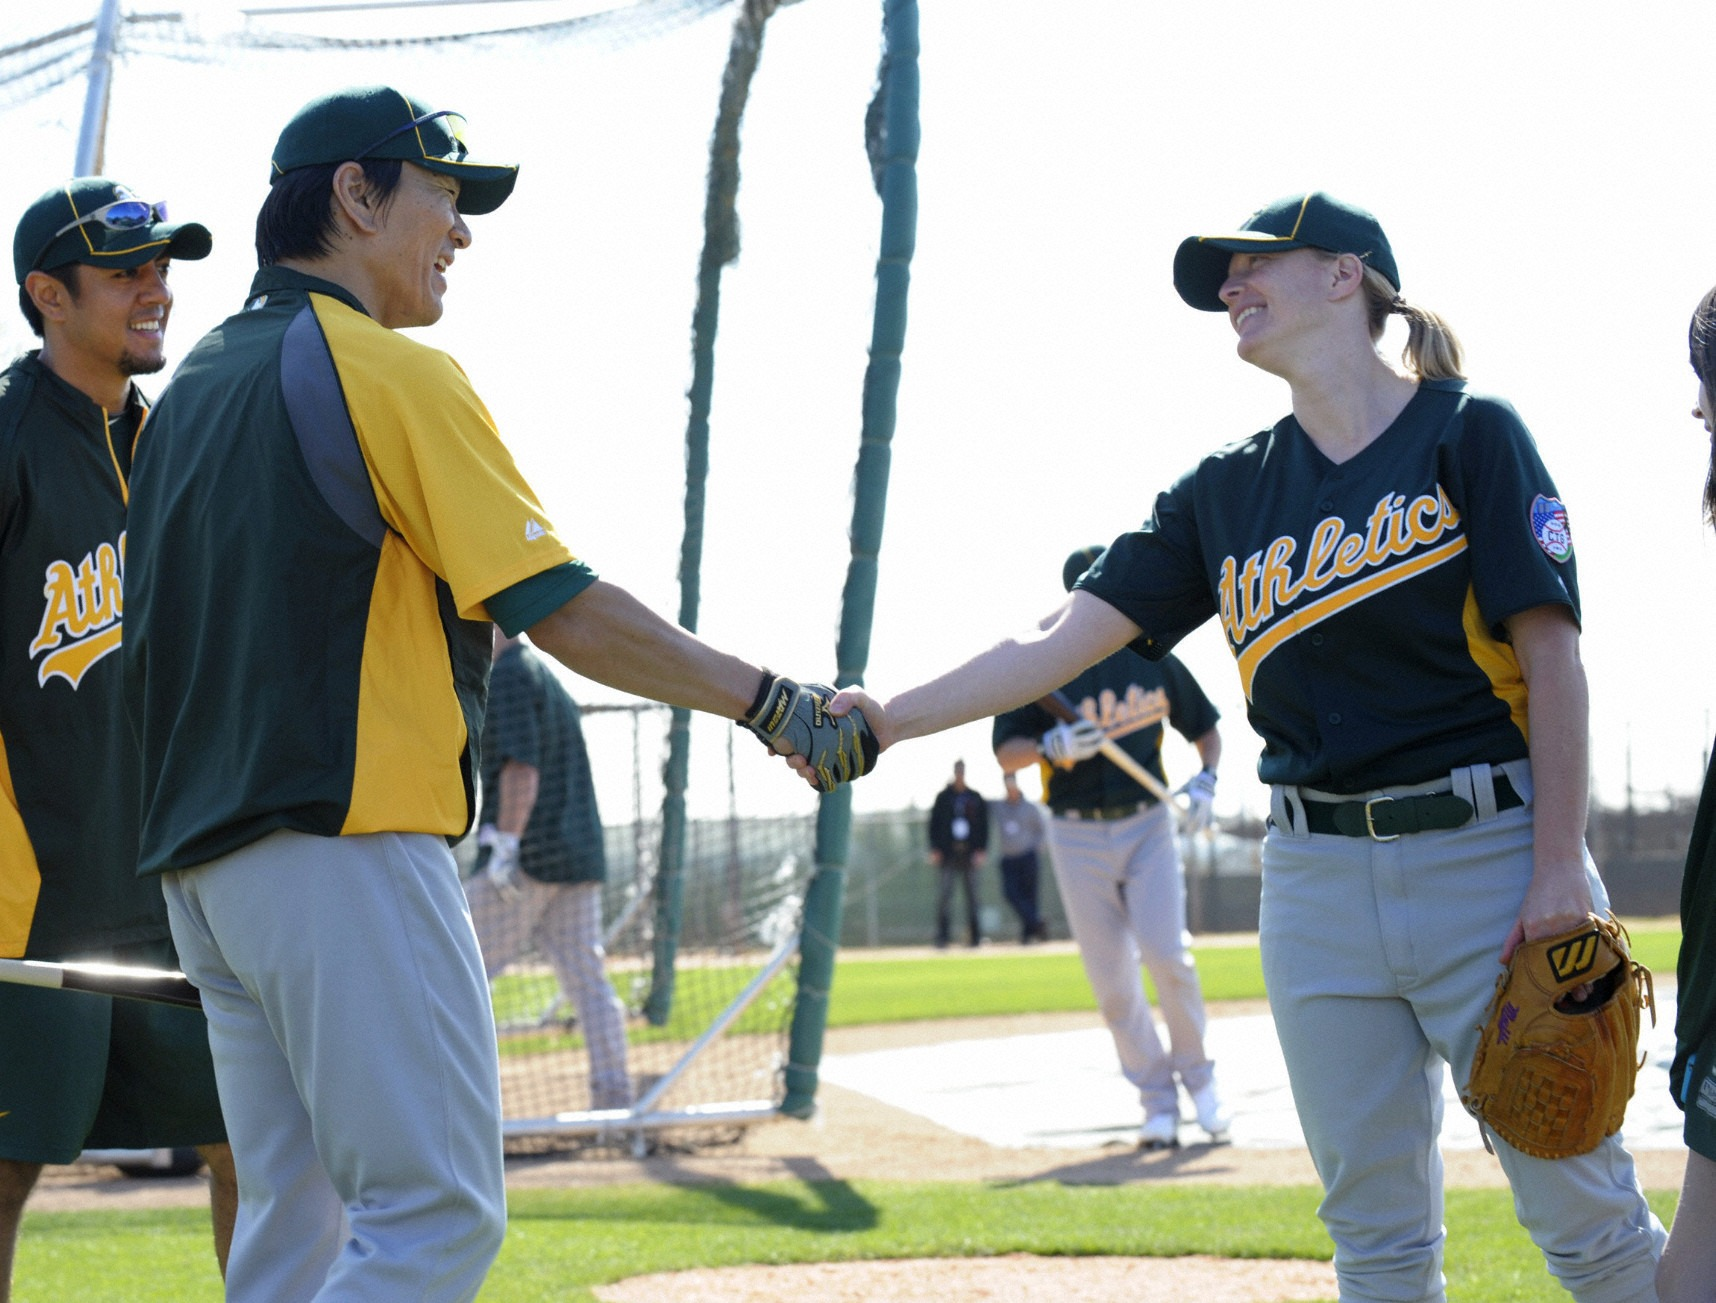 Matsui and Justine Siegal at spring training